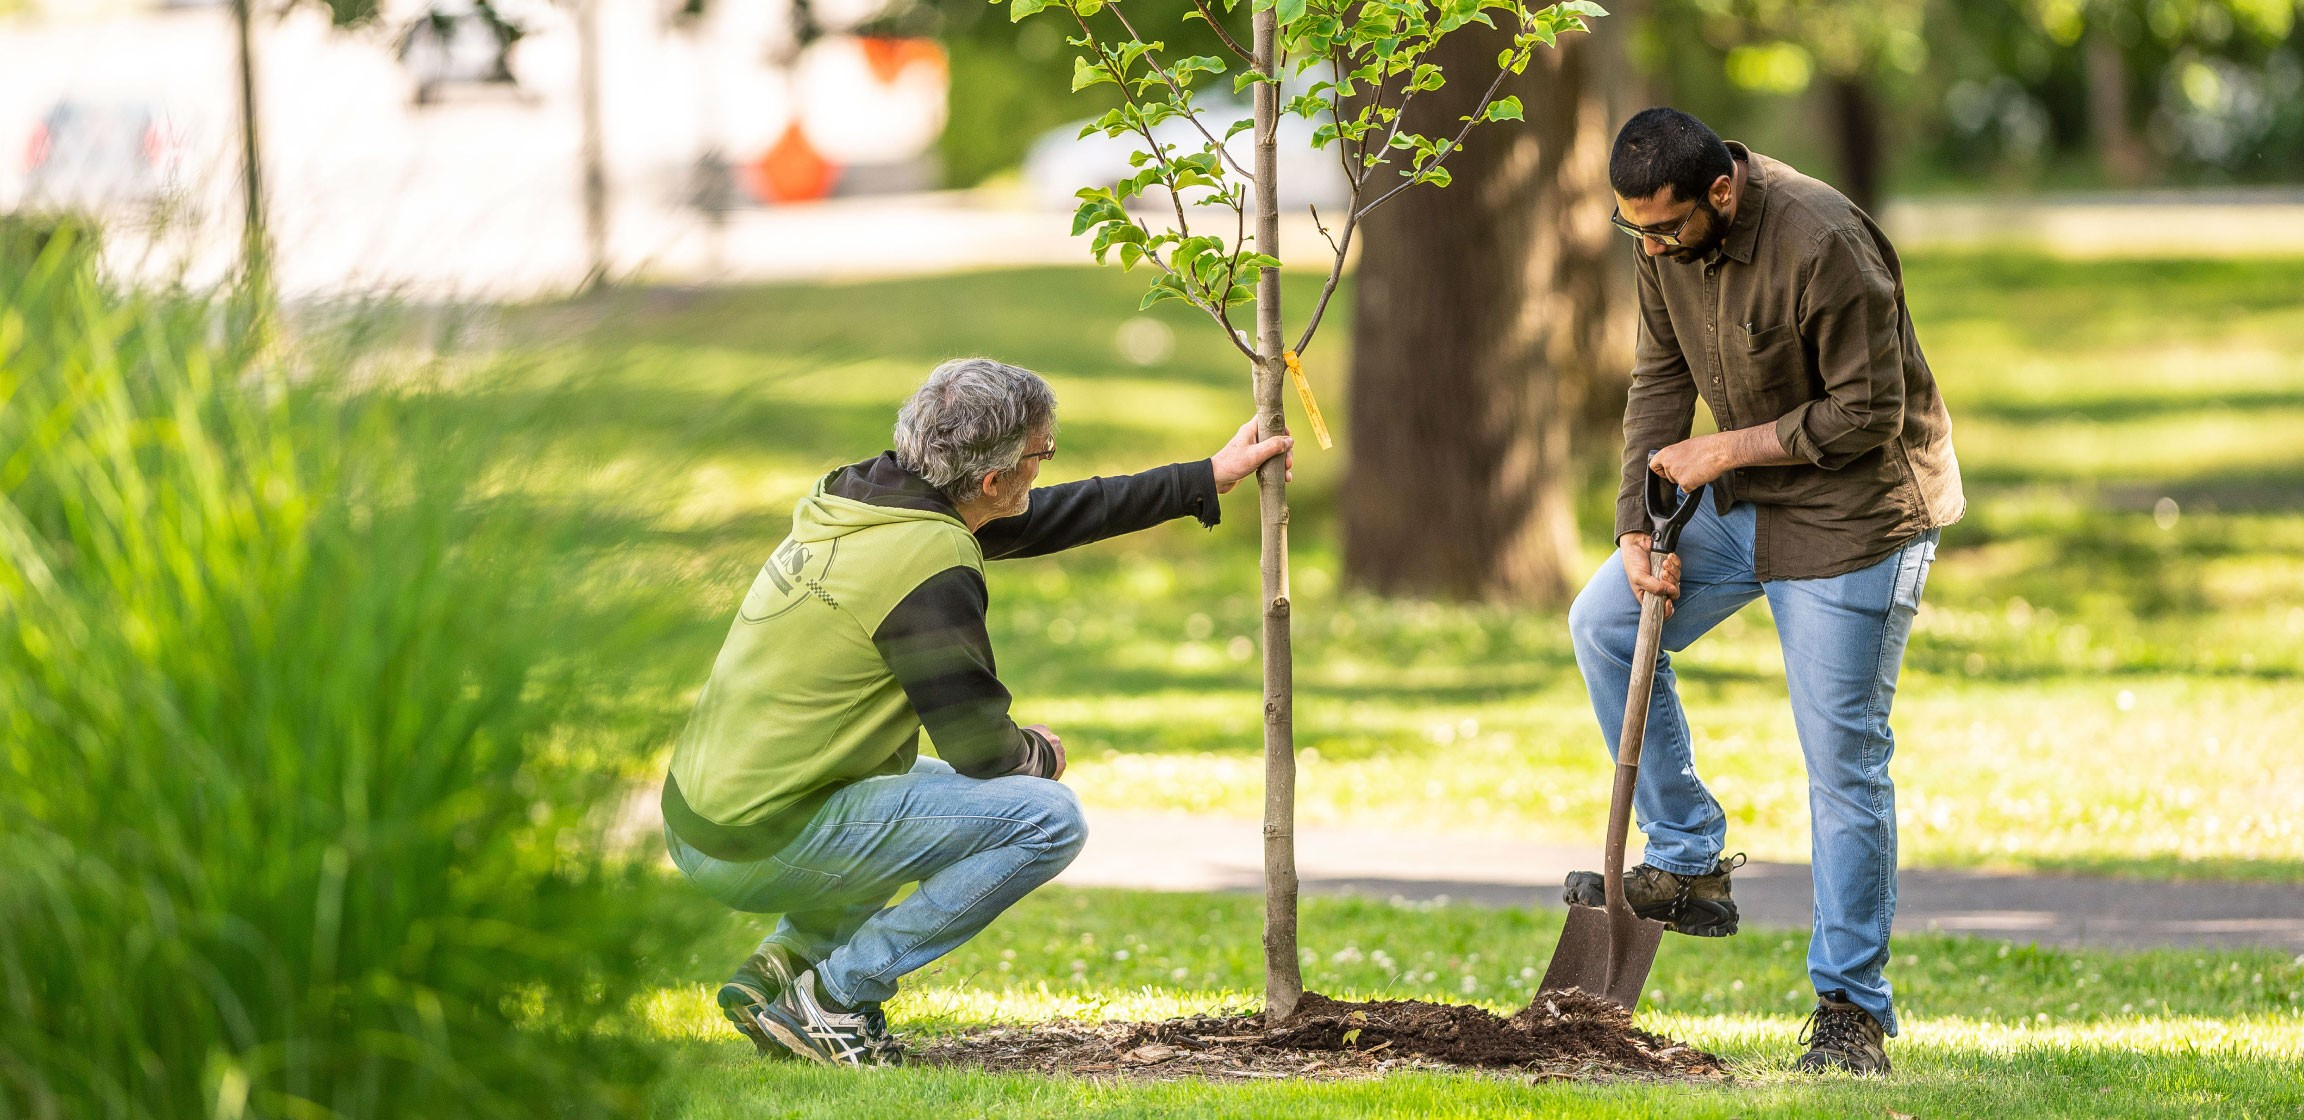 Two people plant a new tree to help fight climate change in their neighbourhood